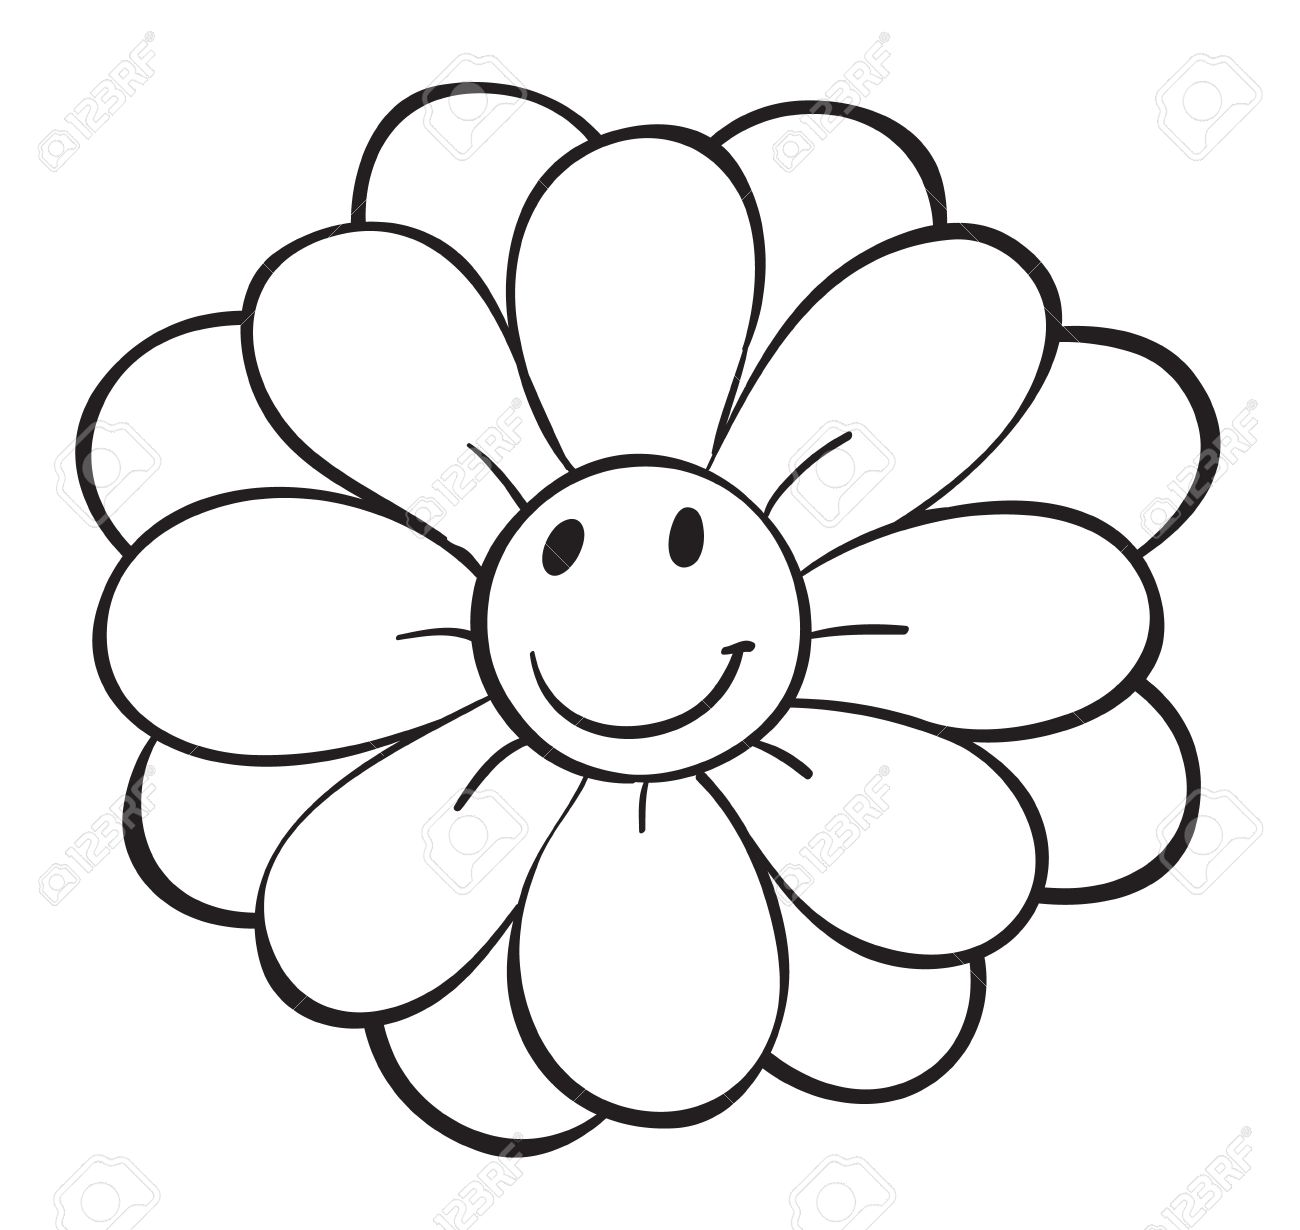 illustration of a flower sketch on a white background Stock Vector - 15943781